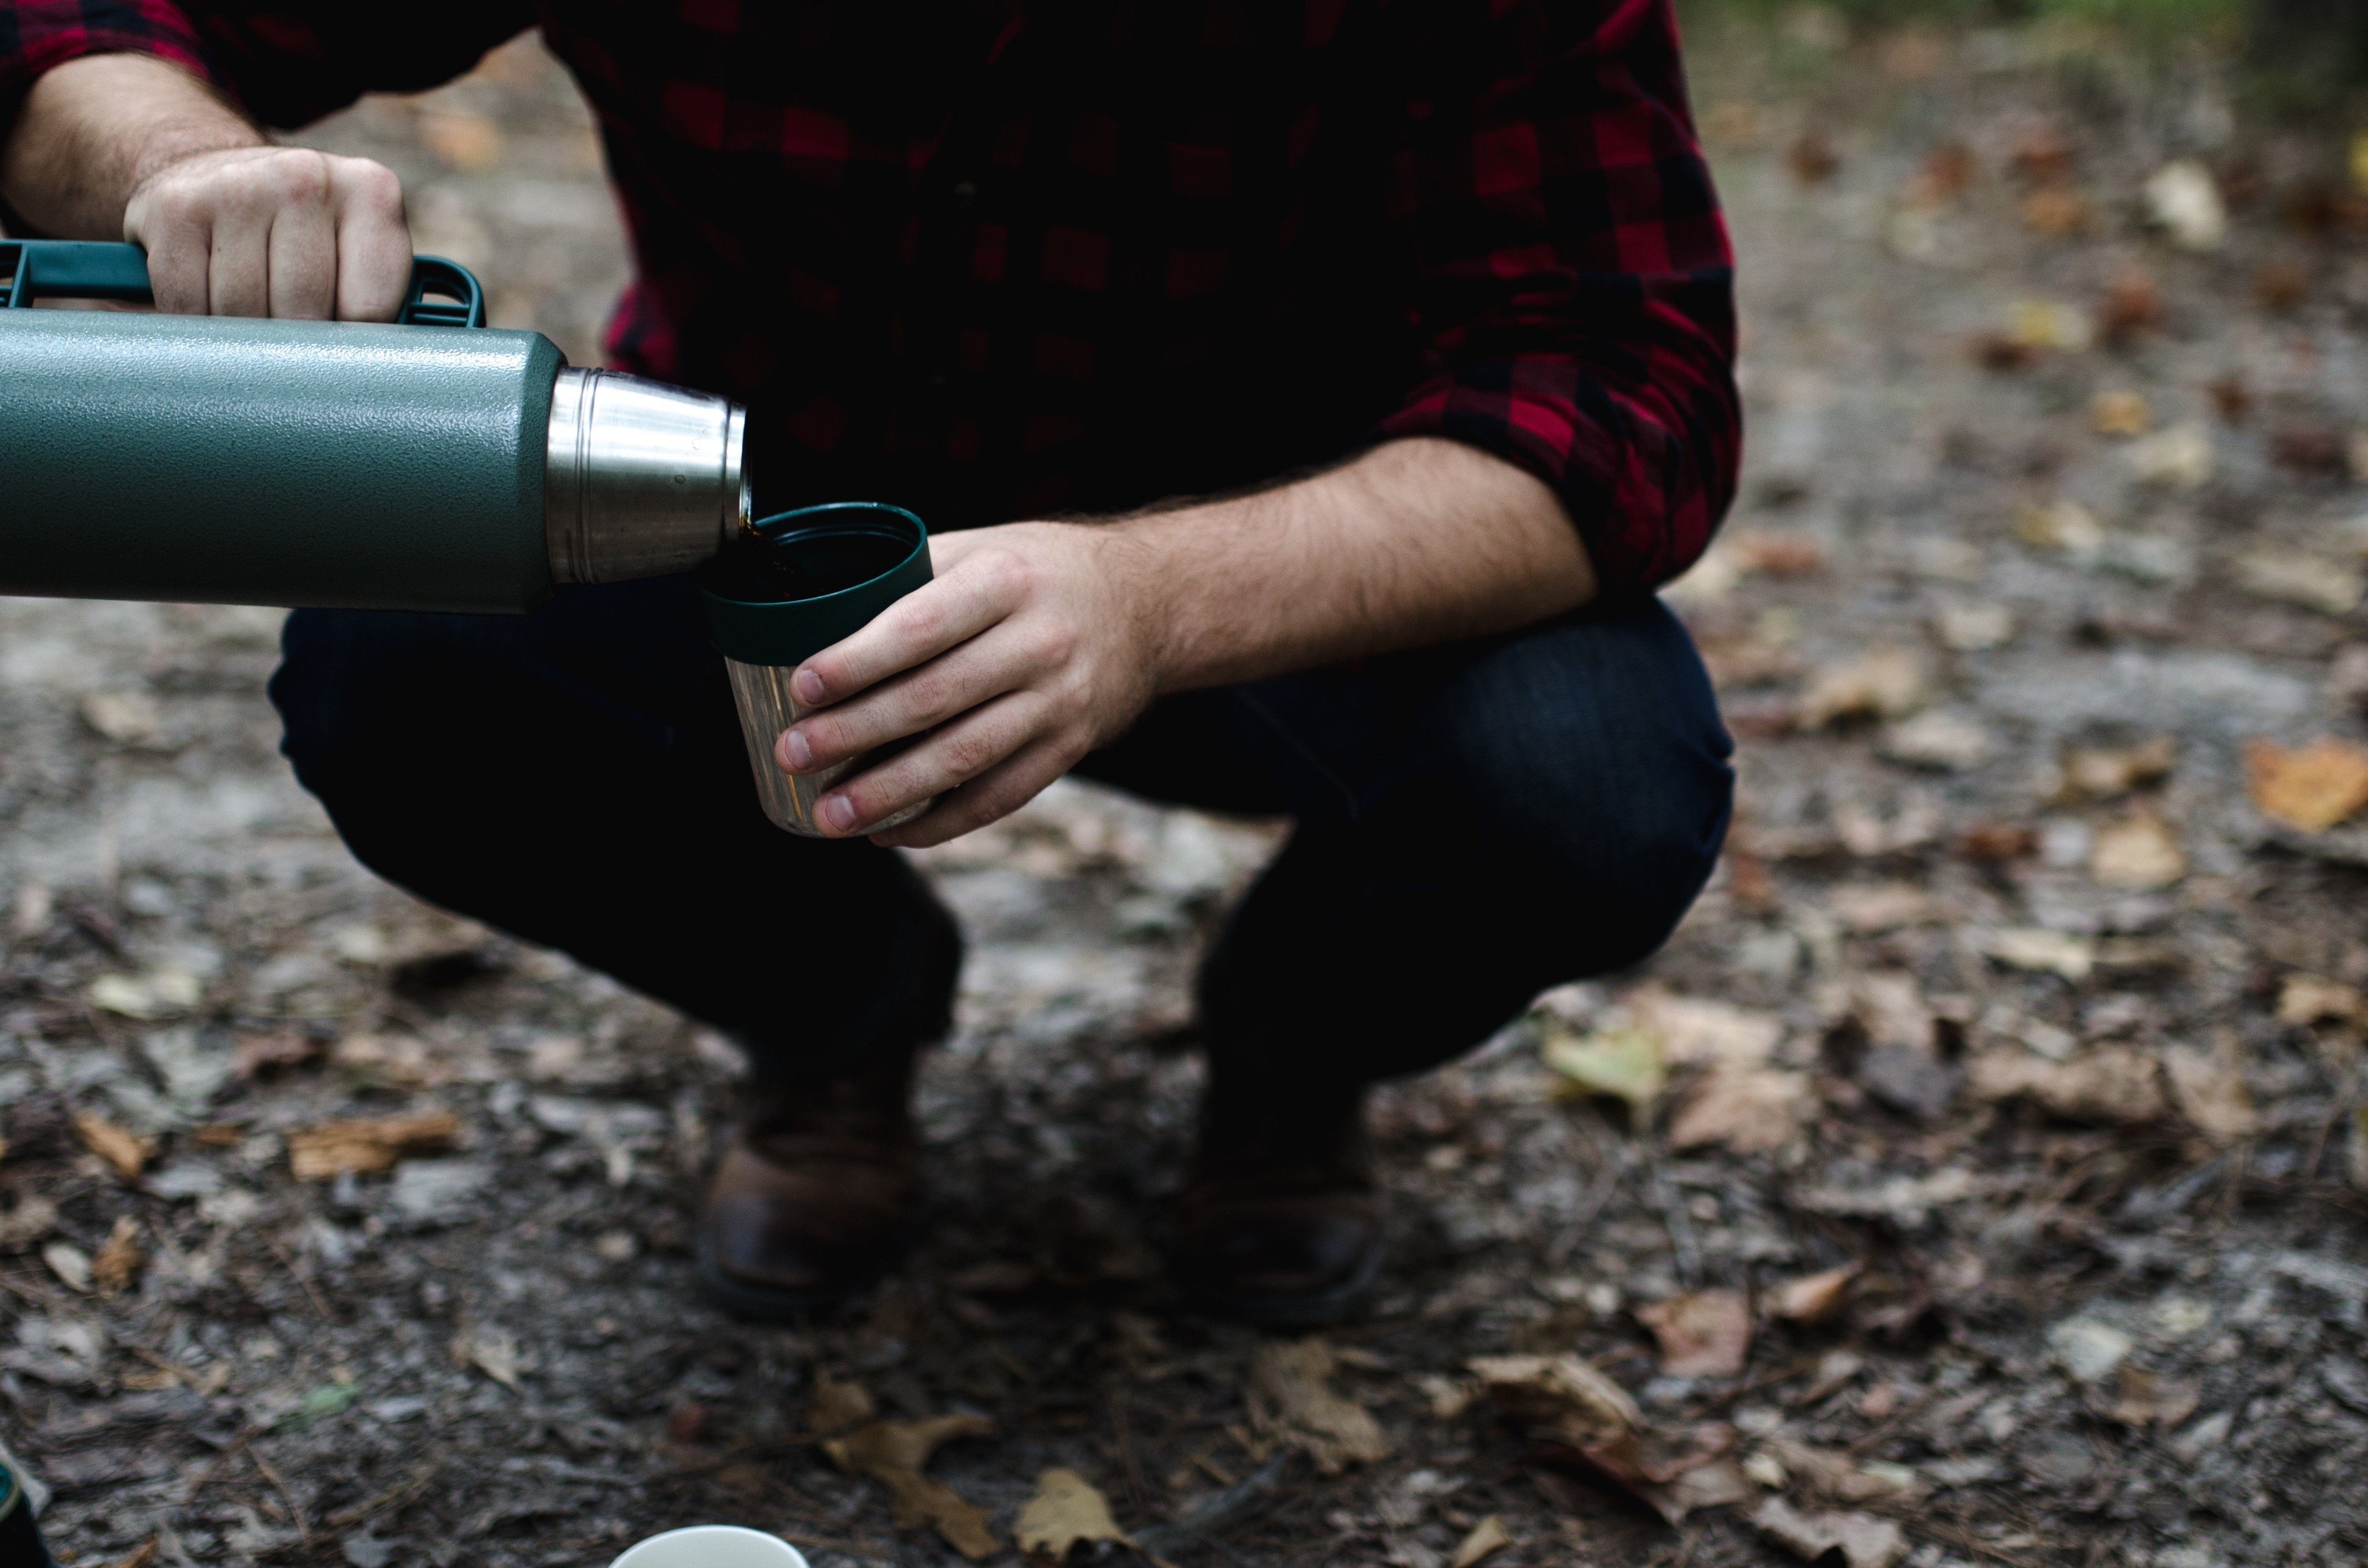 A person pouring coffee from a thermos into a cup.